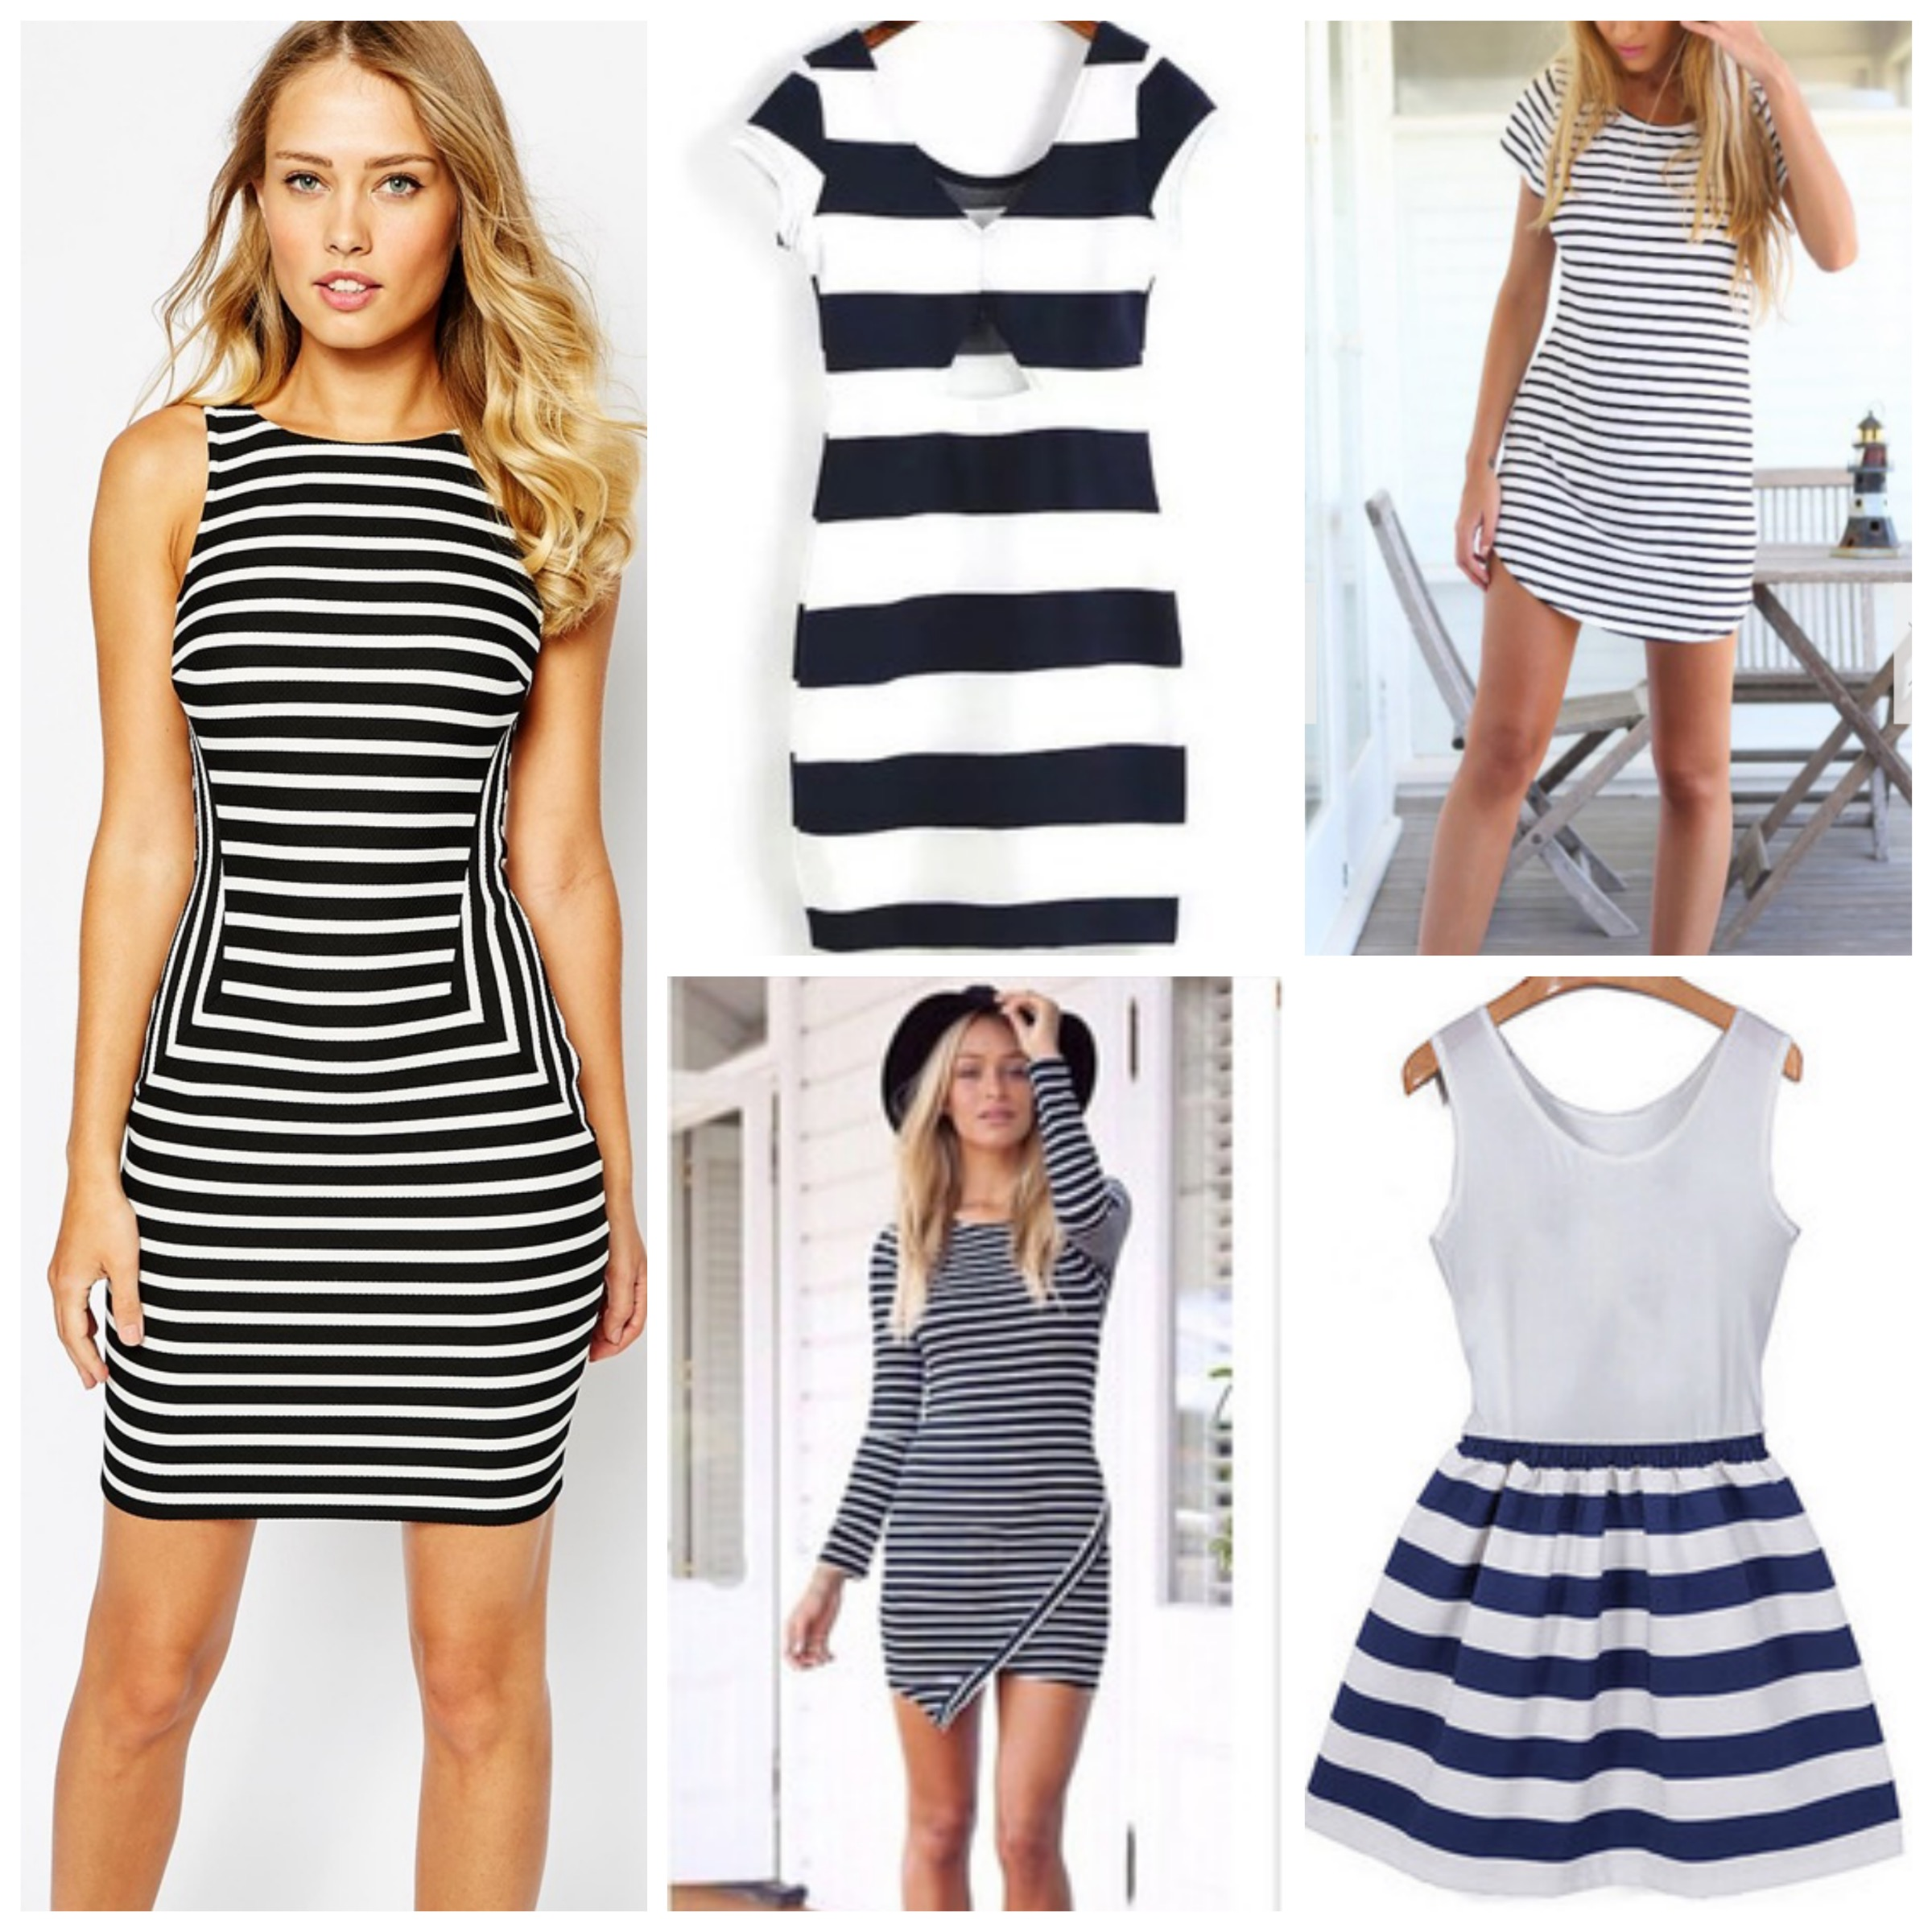 Stripped dresses